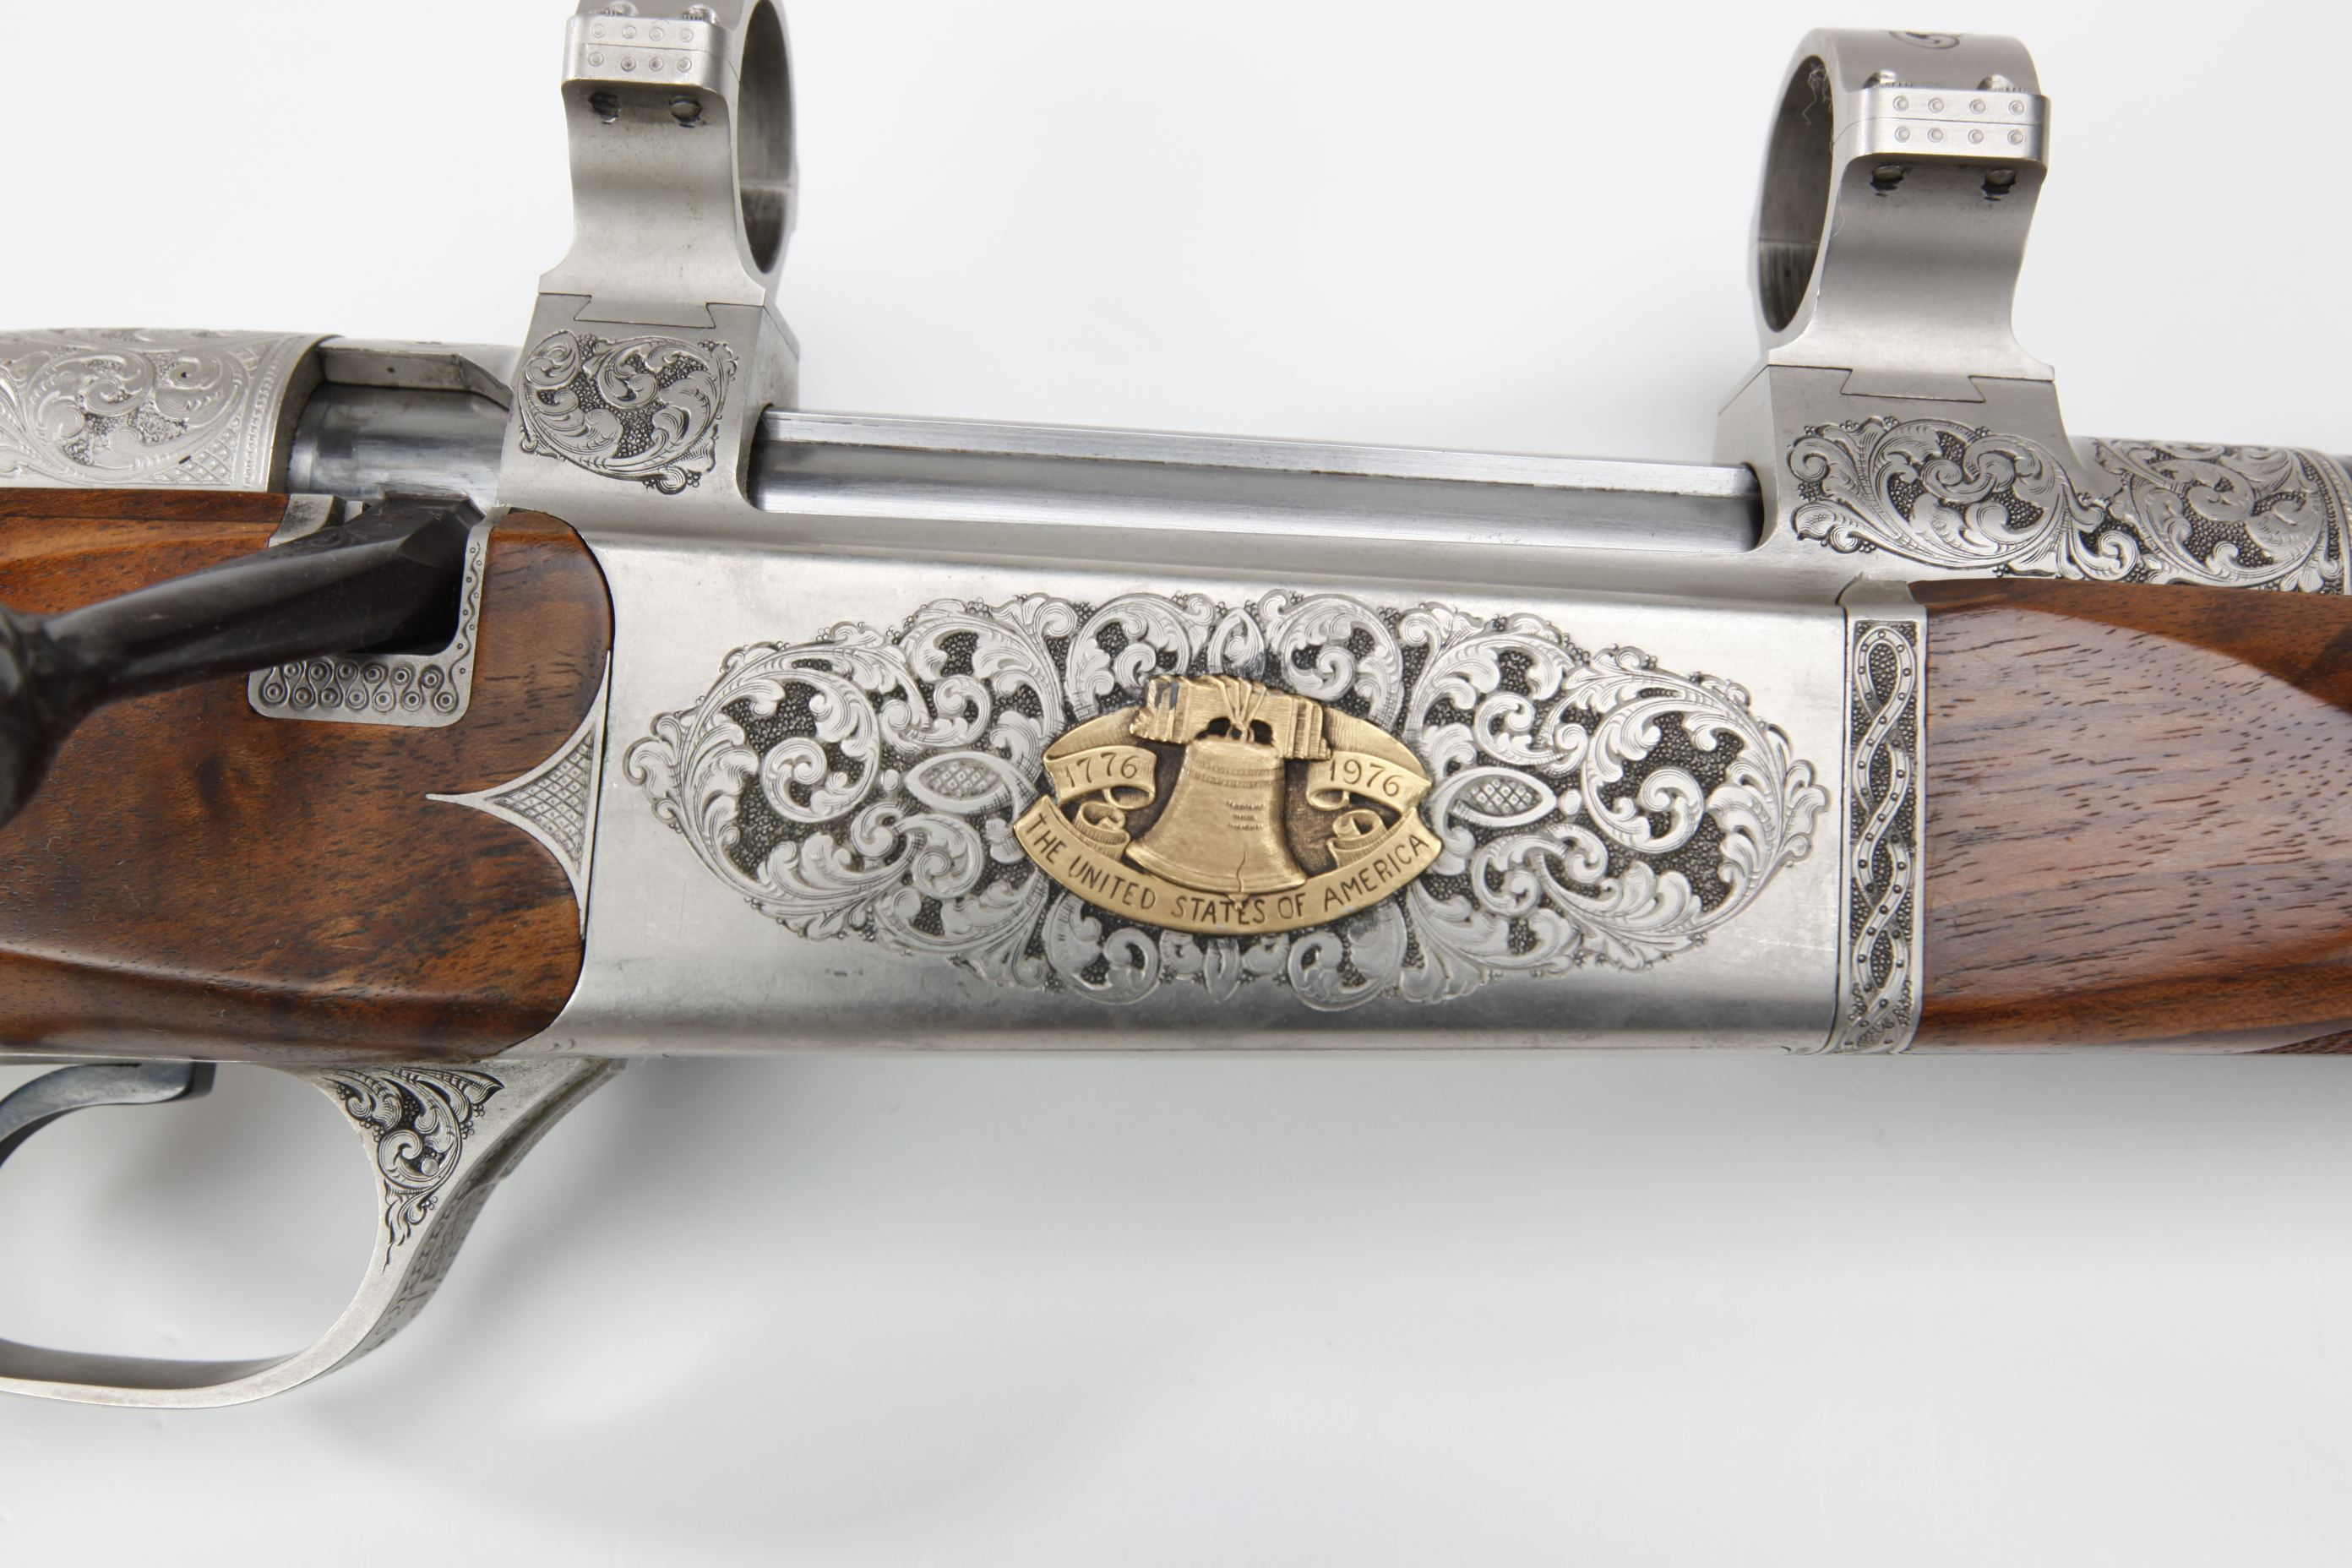 Haskins Custom Presentation U.S. Bolt-Action Rifle